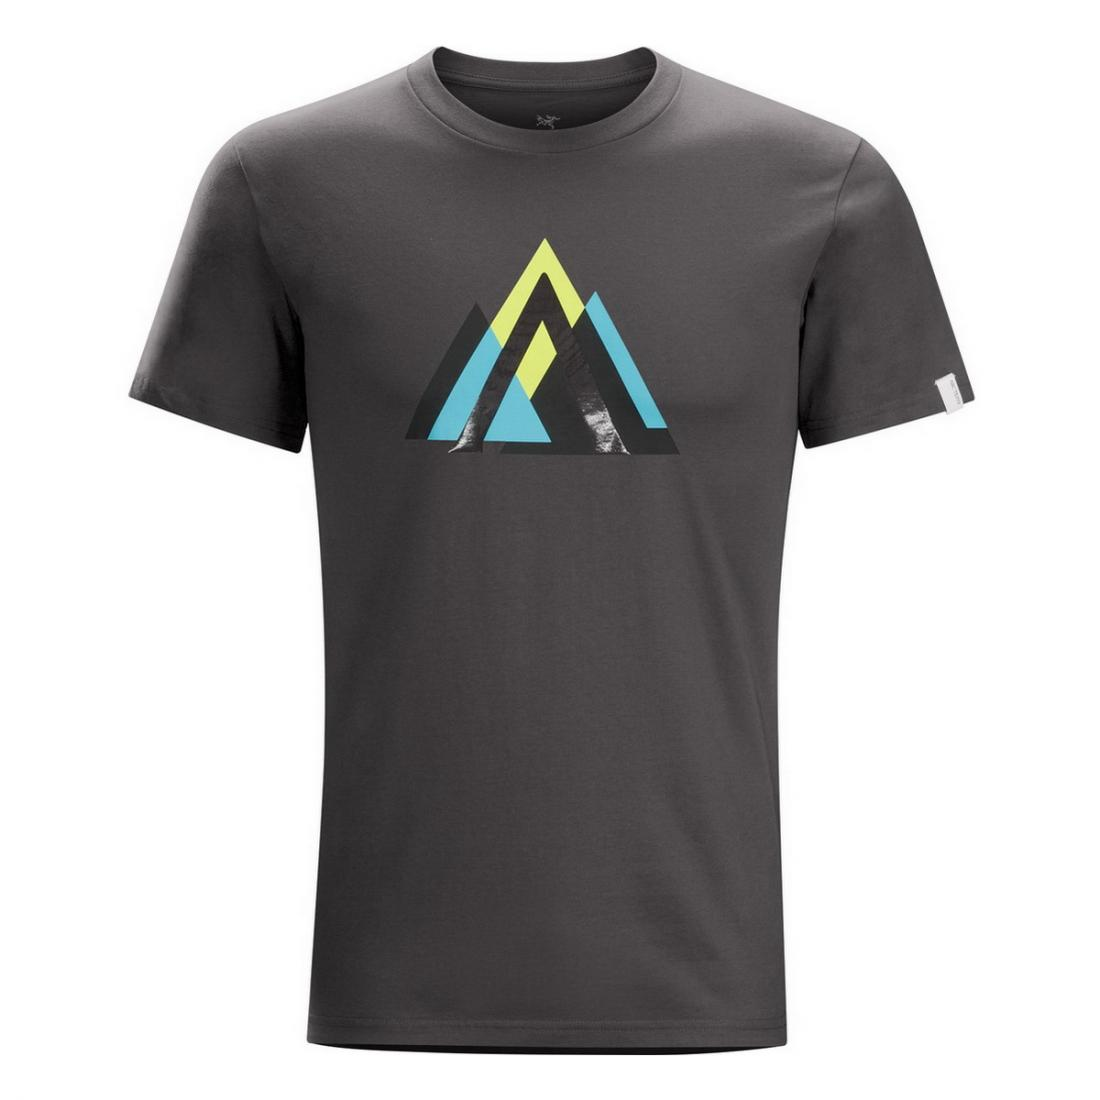 Футболка Arc Mountain SS T-Shirt муж.